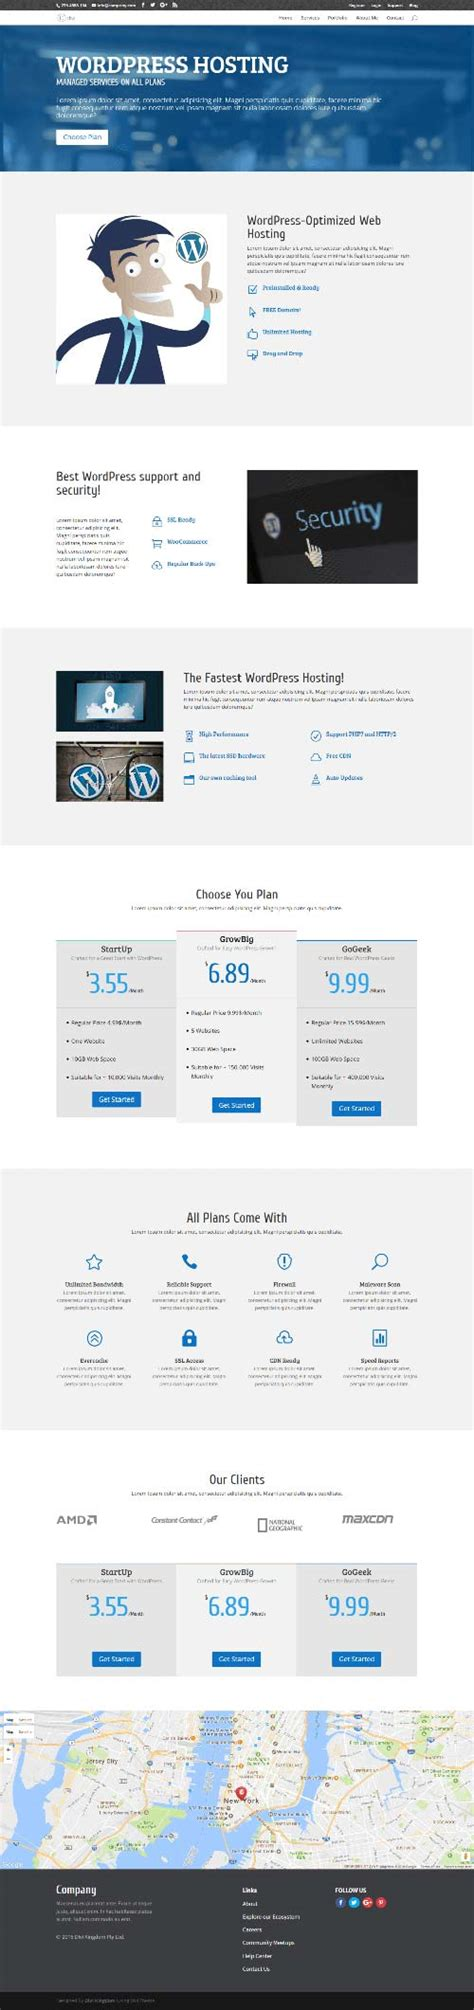 business directory layout design hosting company 1 page layout divi theme layouts